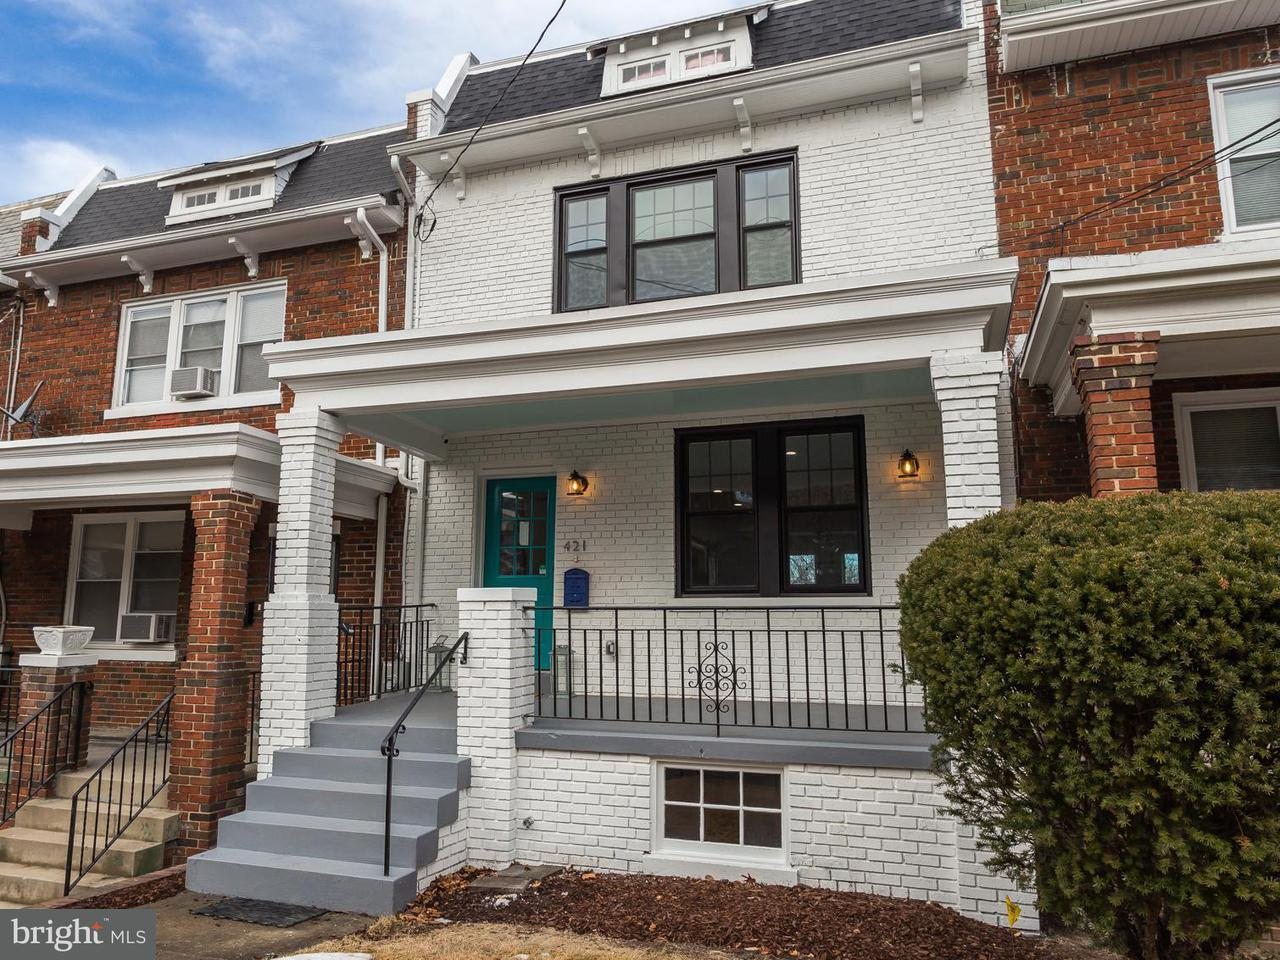 Townhouse for Sale at 421 Farragut St Nw 421 Farragut St Nw Washington, District Of Columbia 20011 United States